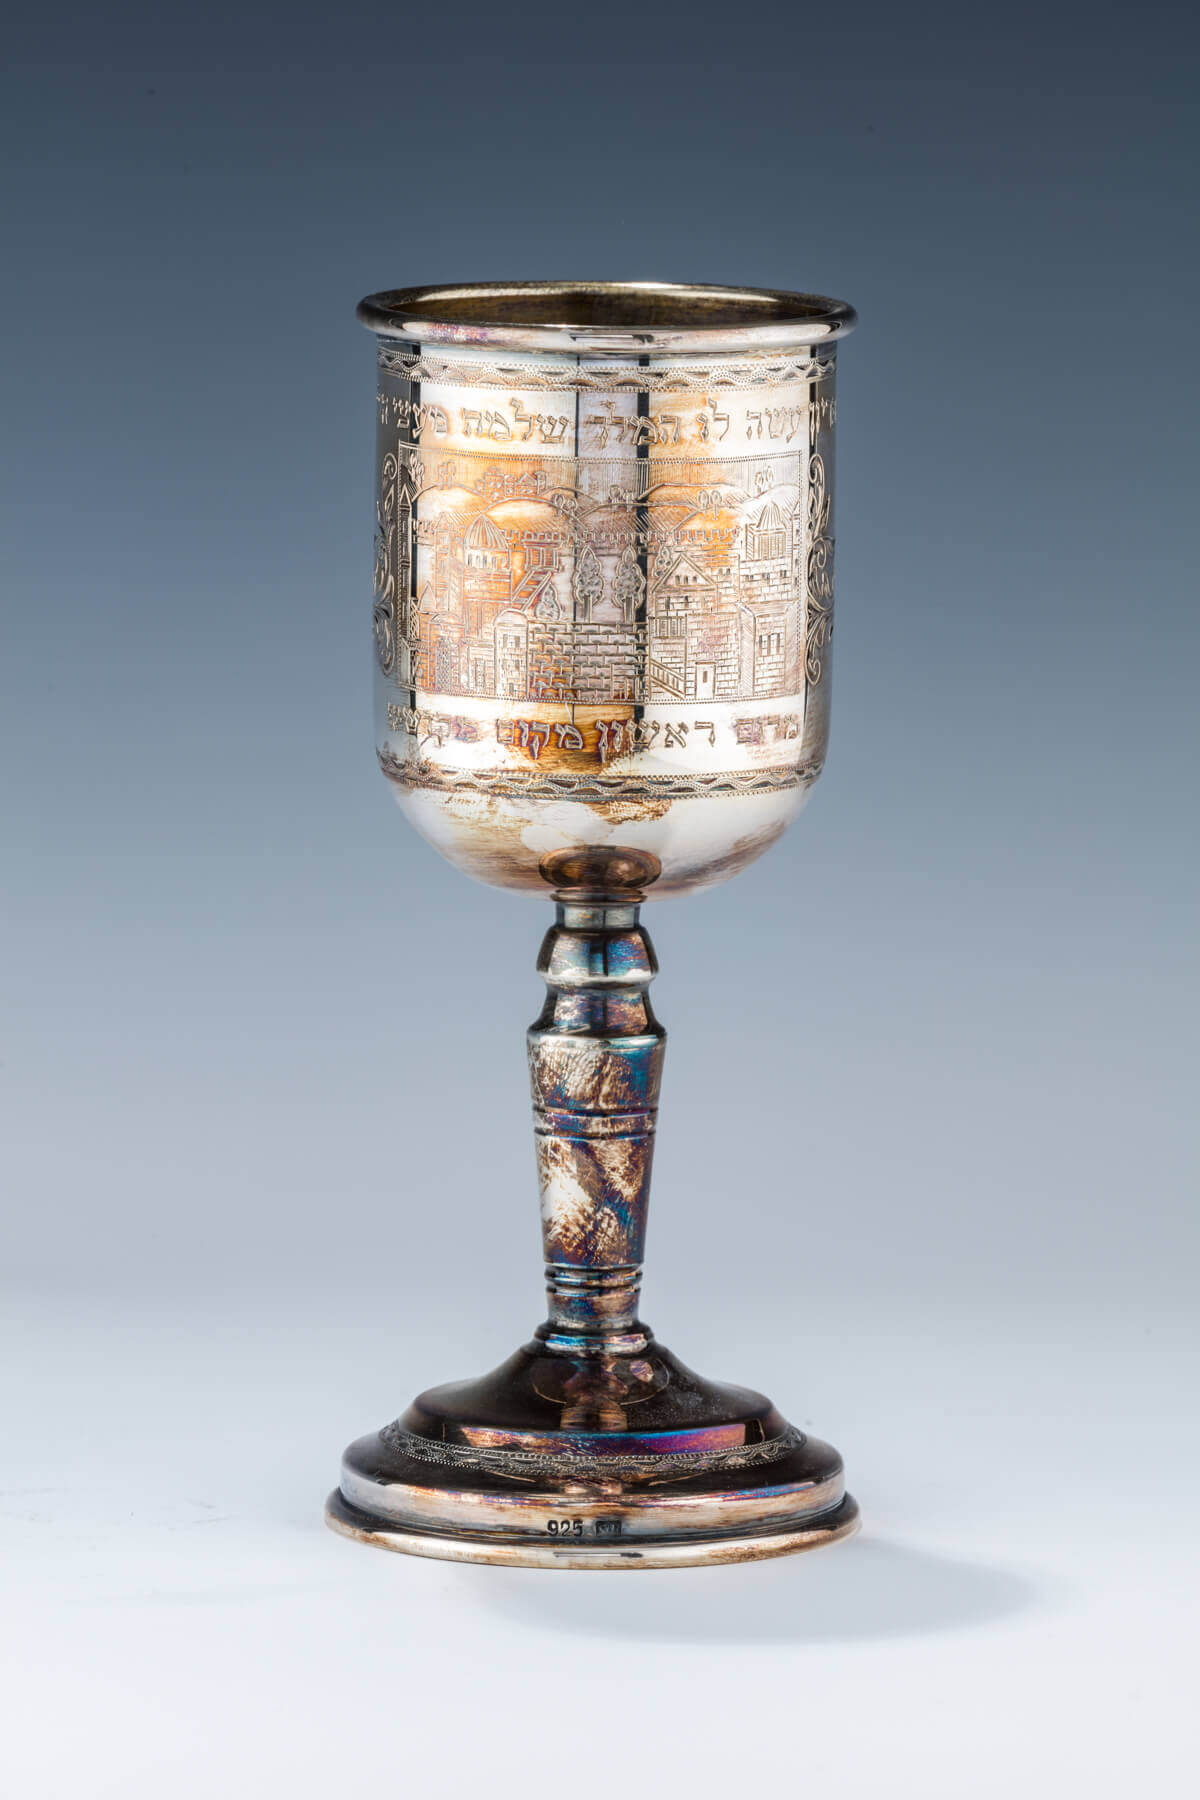 152. A LARGE STERLING SILVER KIDDUSH GOBLET BY SHUKI FREIMAN